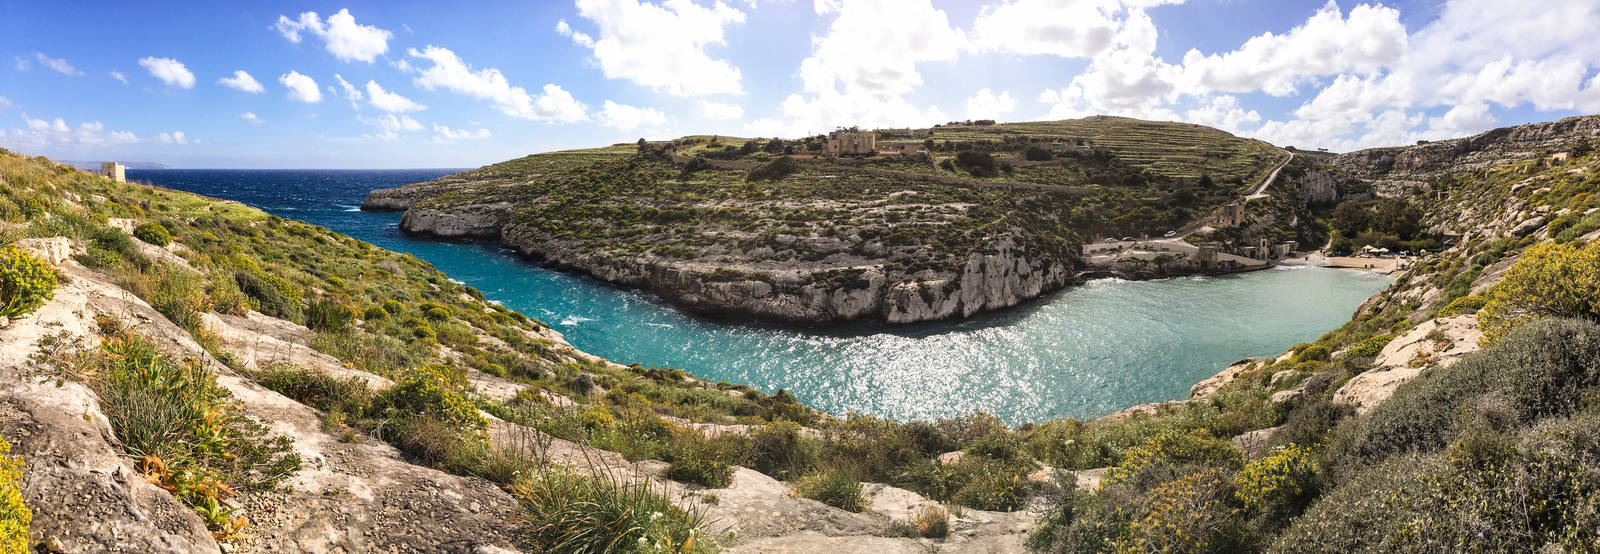 Panorama of the Mgarr xi-Xini inlet